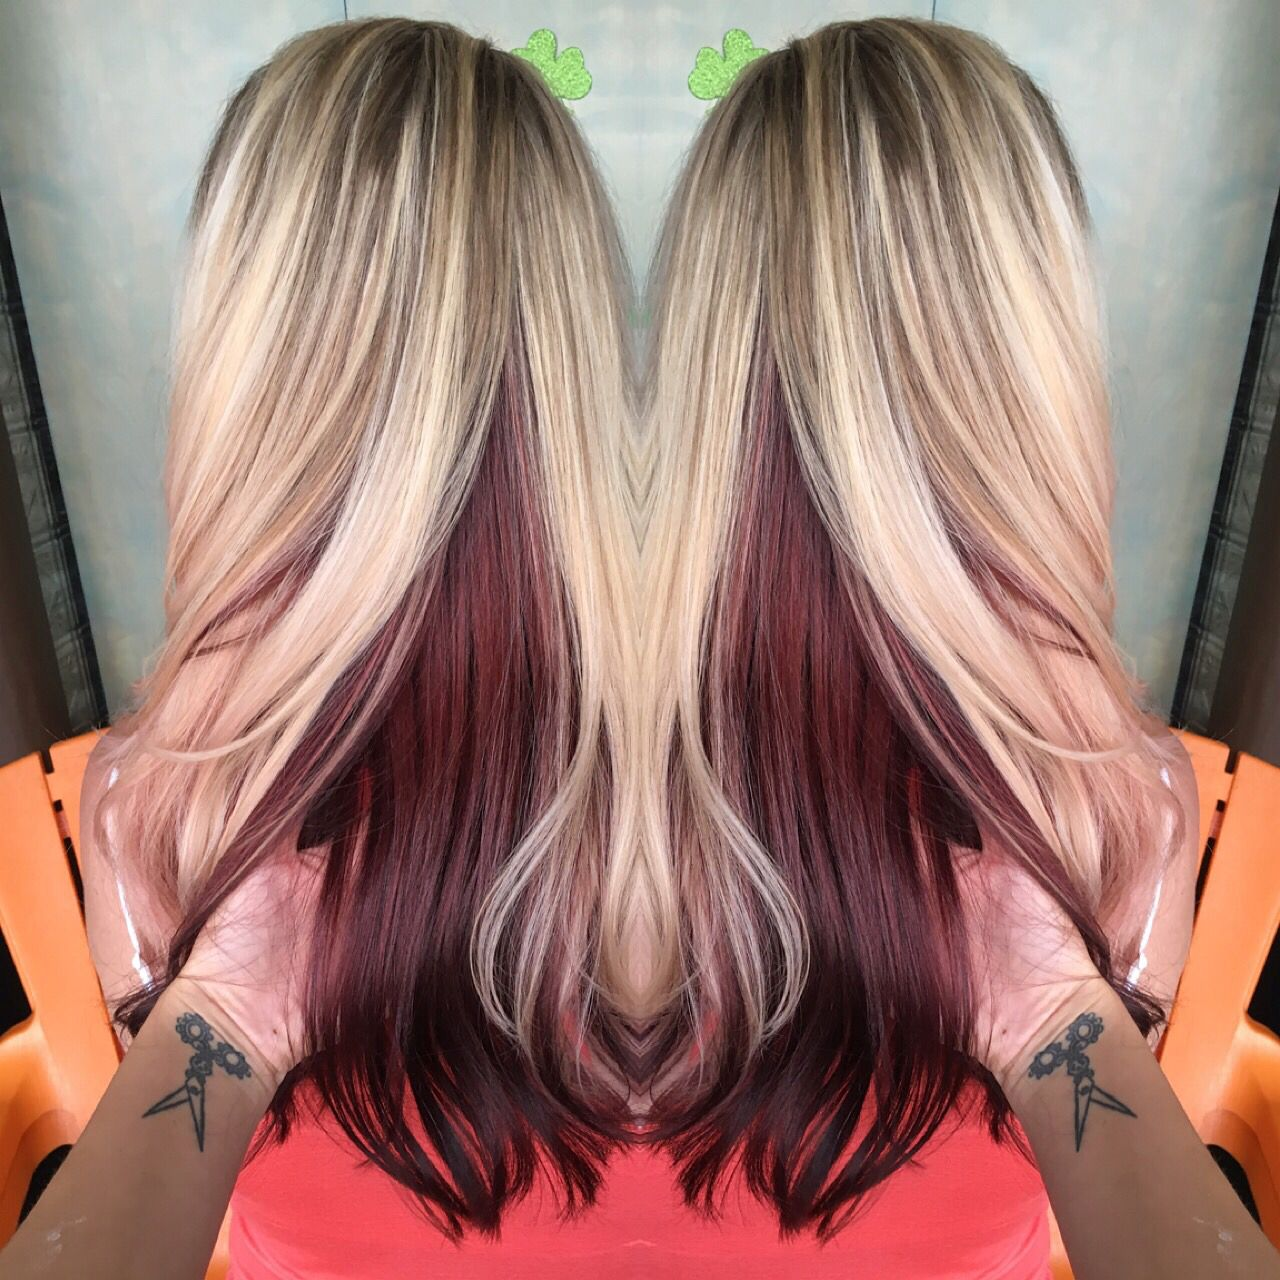 blonde with violet red underneath hair ive done